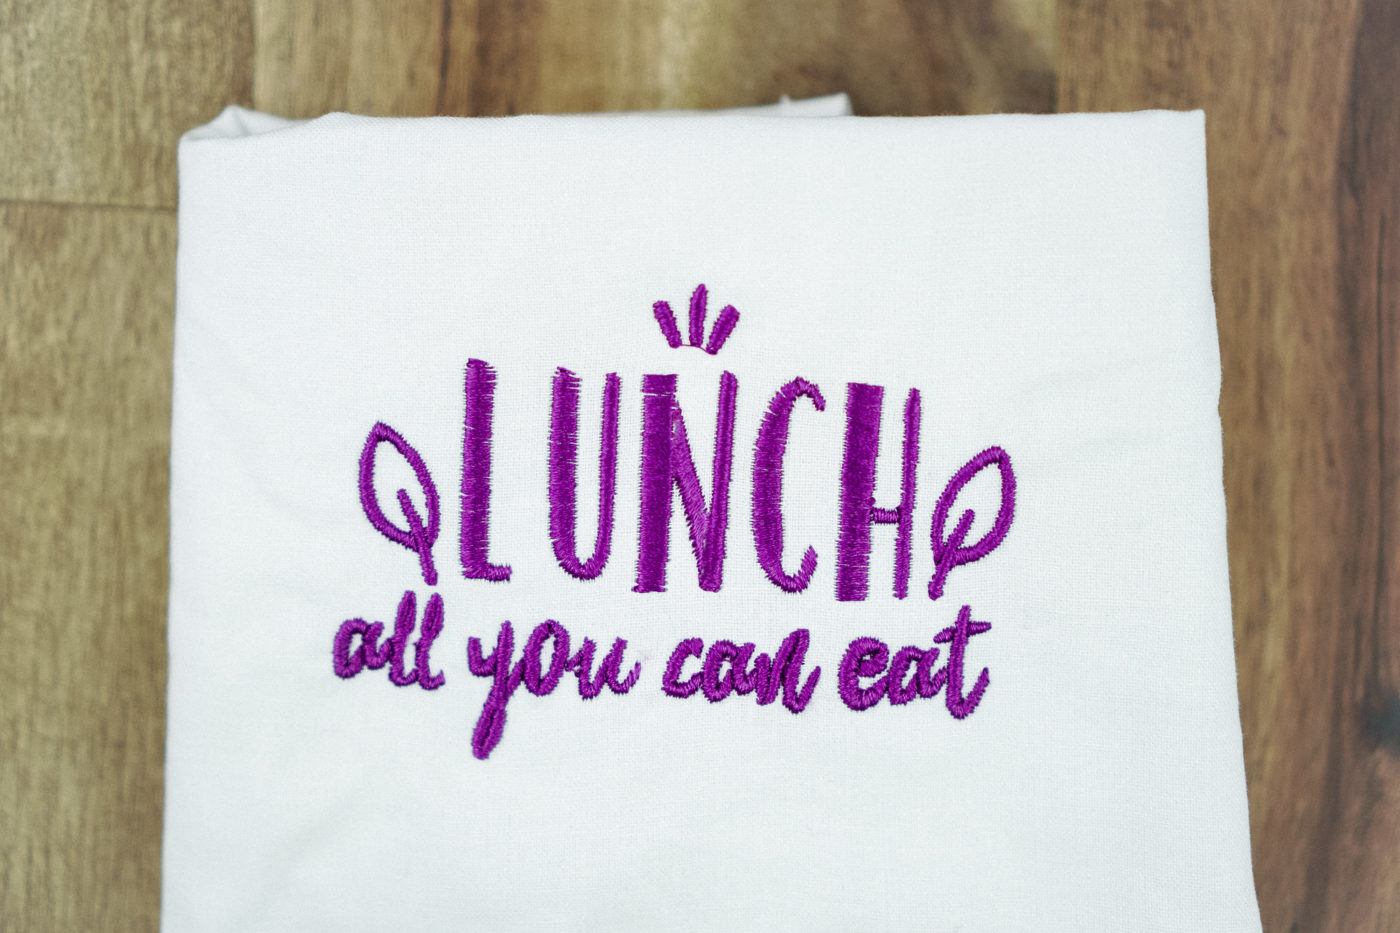 Stickdatei Lunch stickdatei lunchbag Lunch – »All you can eat« stickdatei lunch 01 1400x933